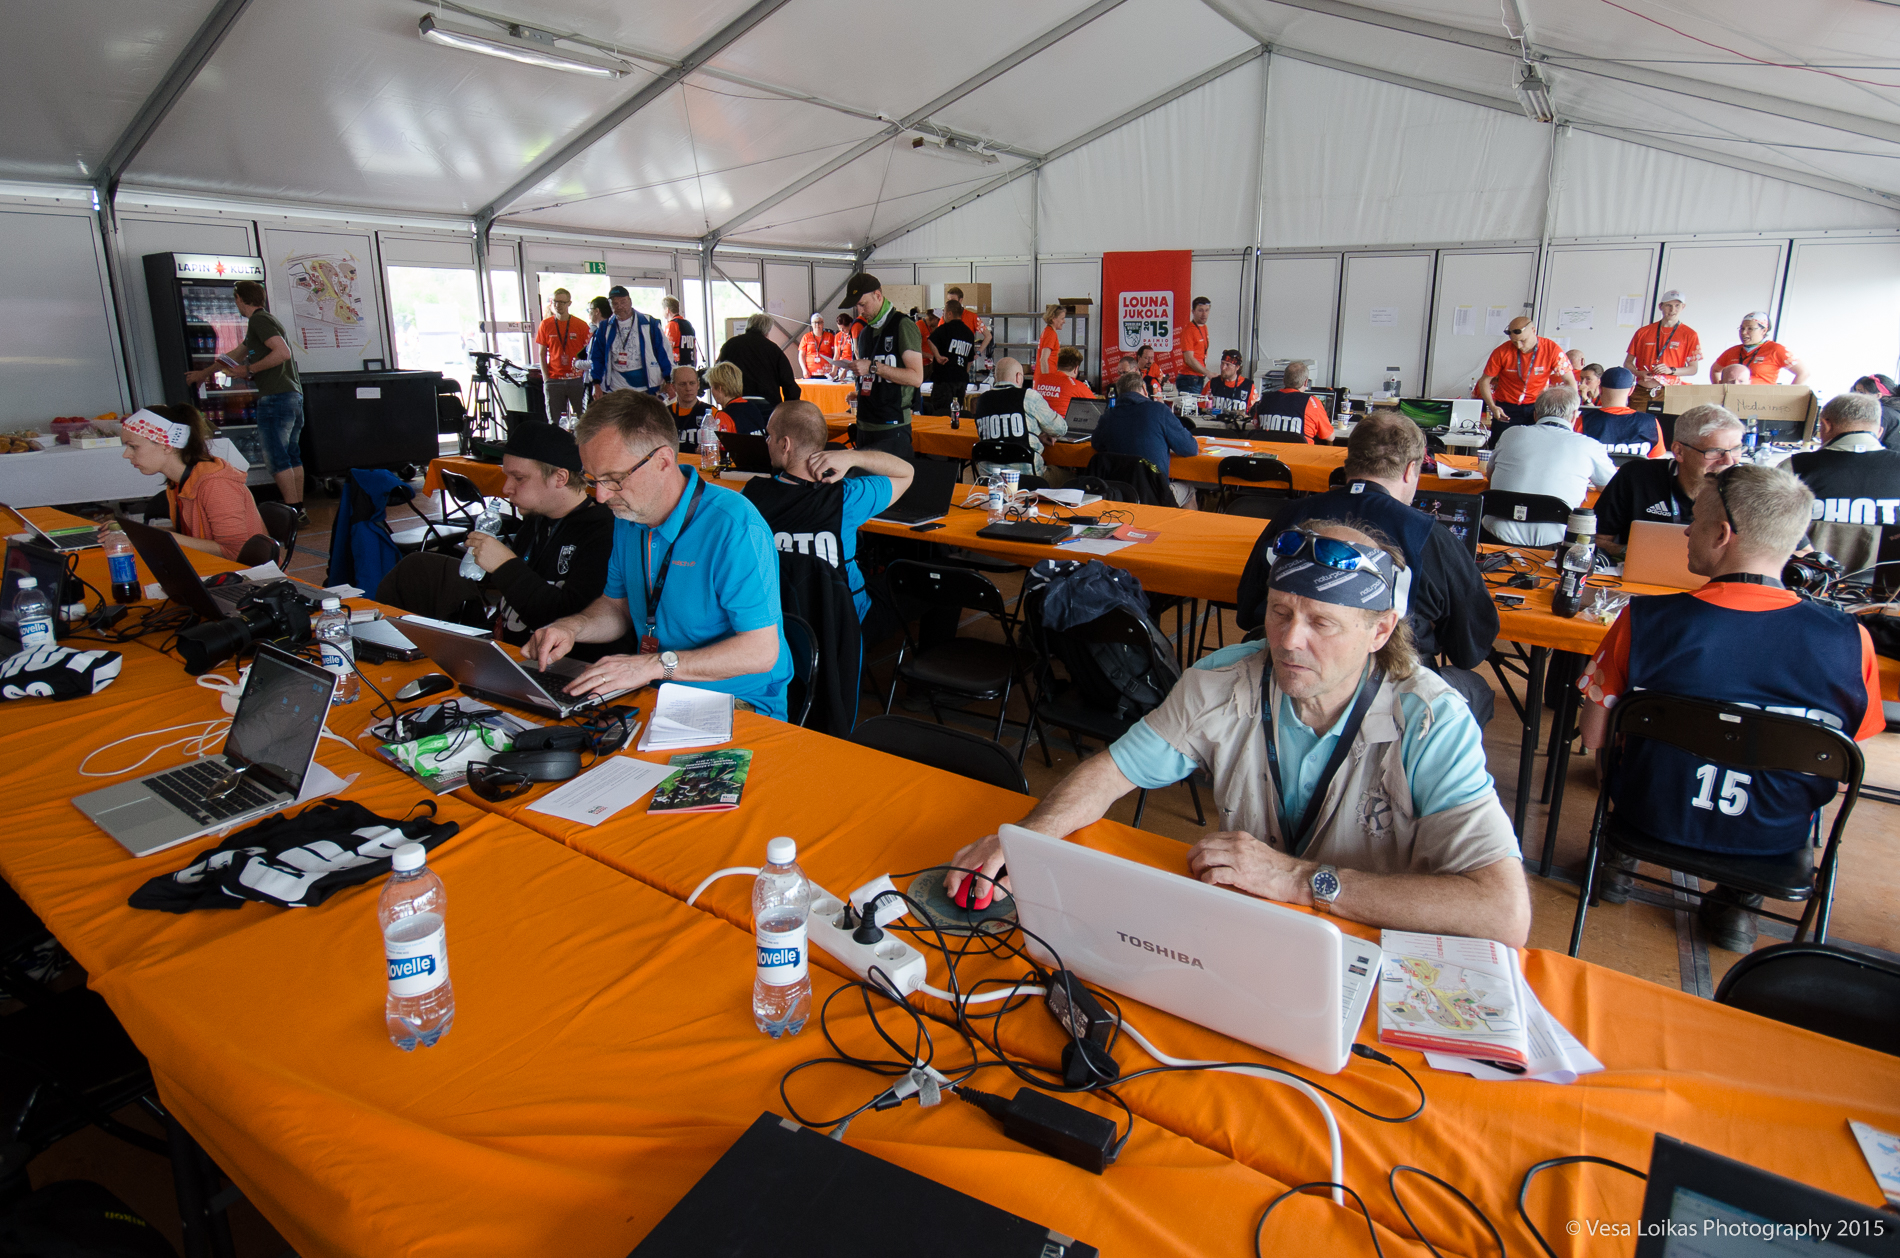 Media tent with journalists and photographers as well as webcast and social media crew.